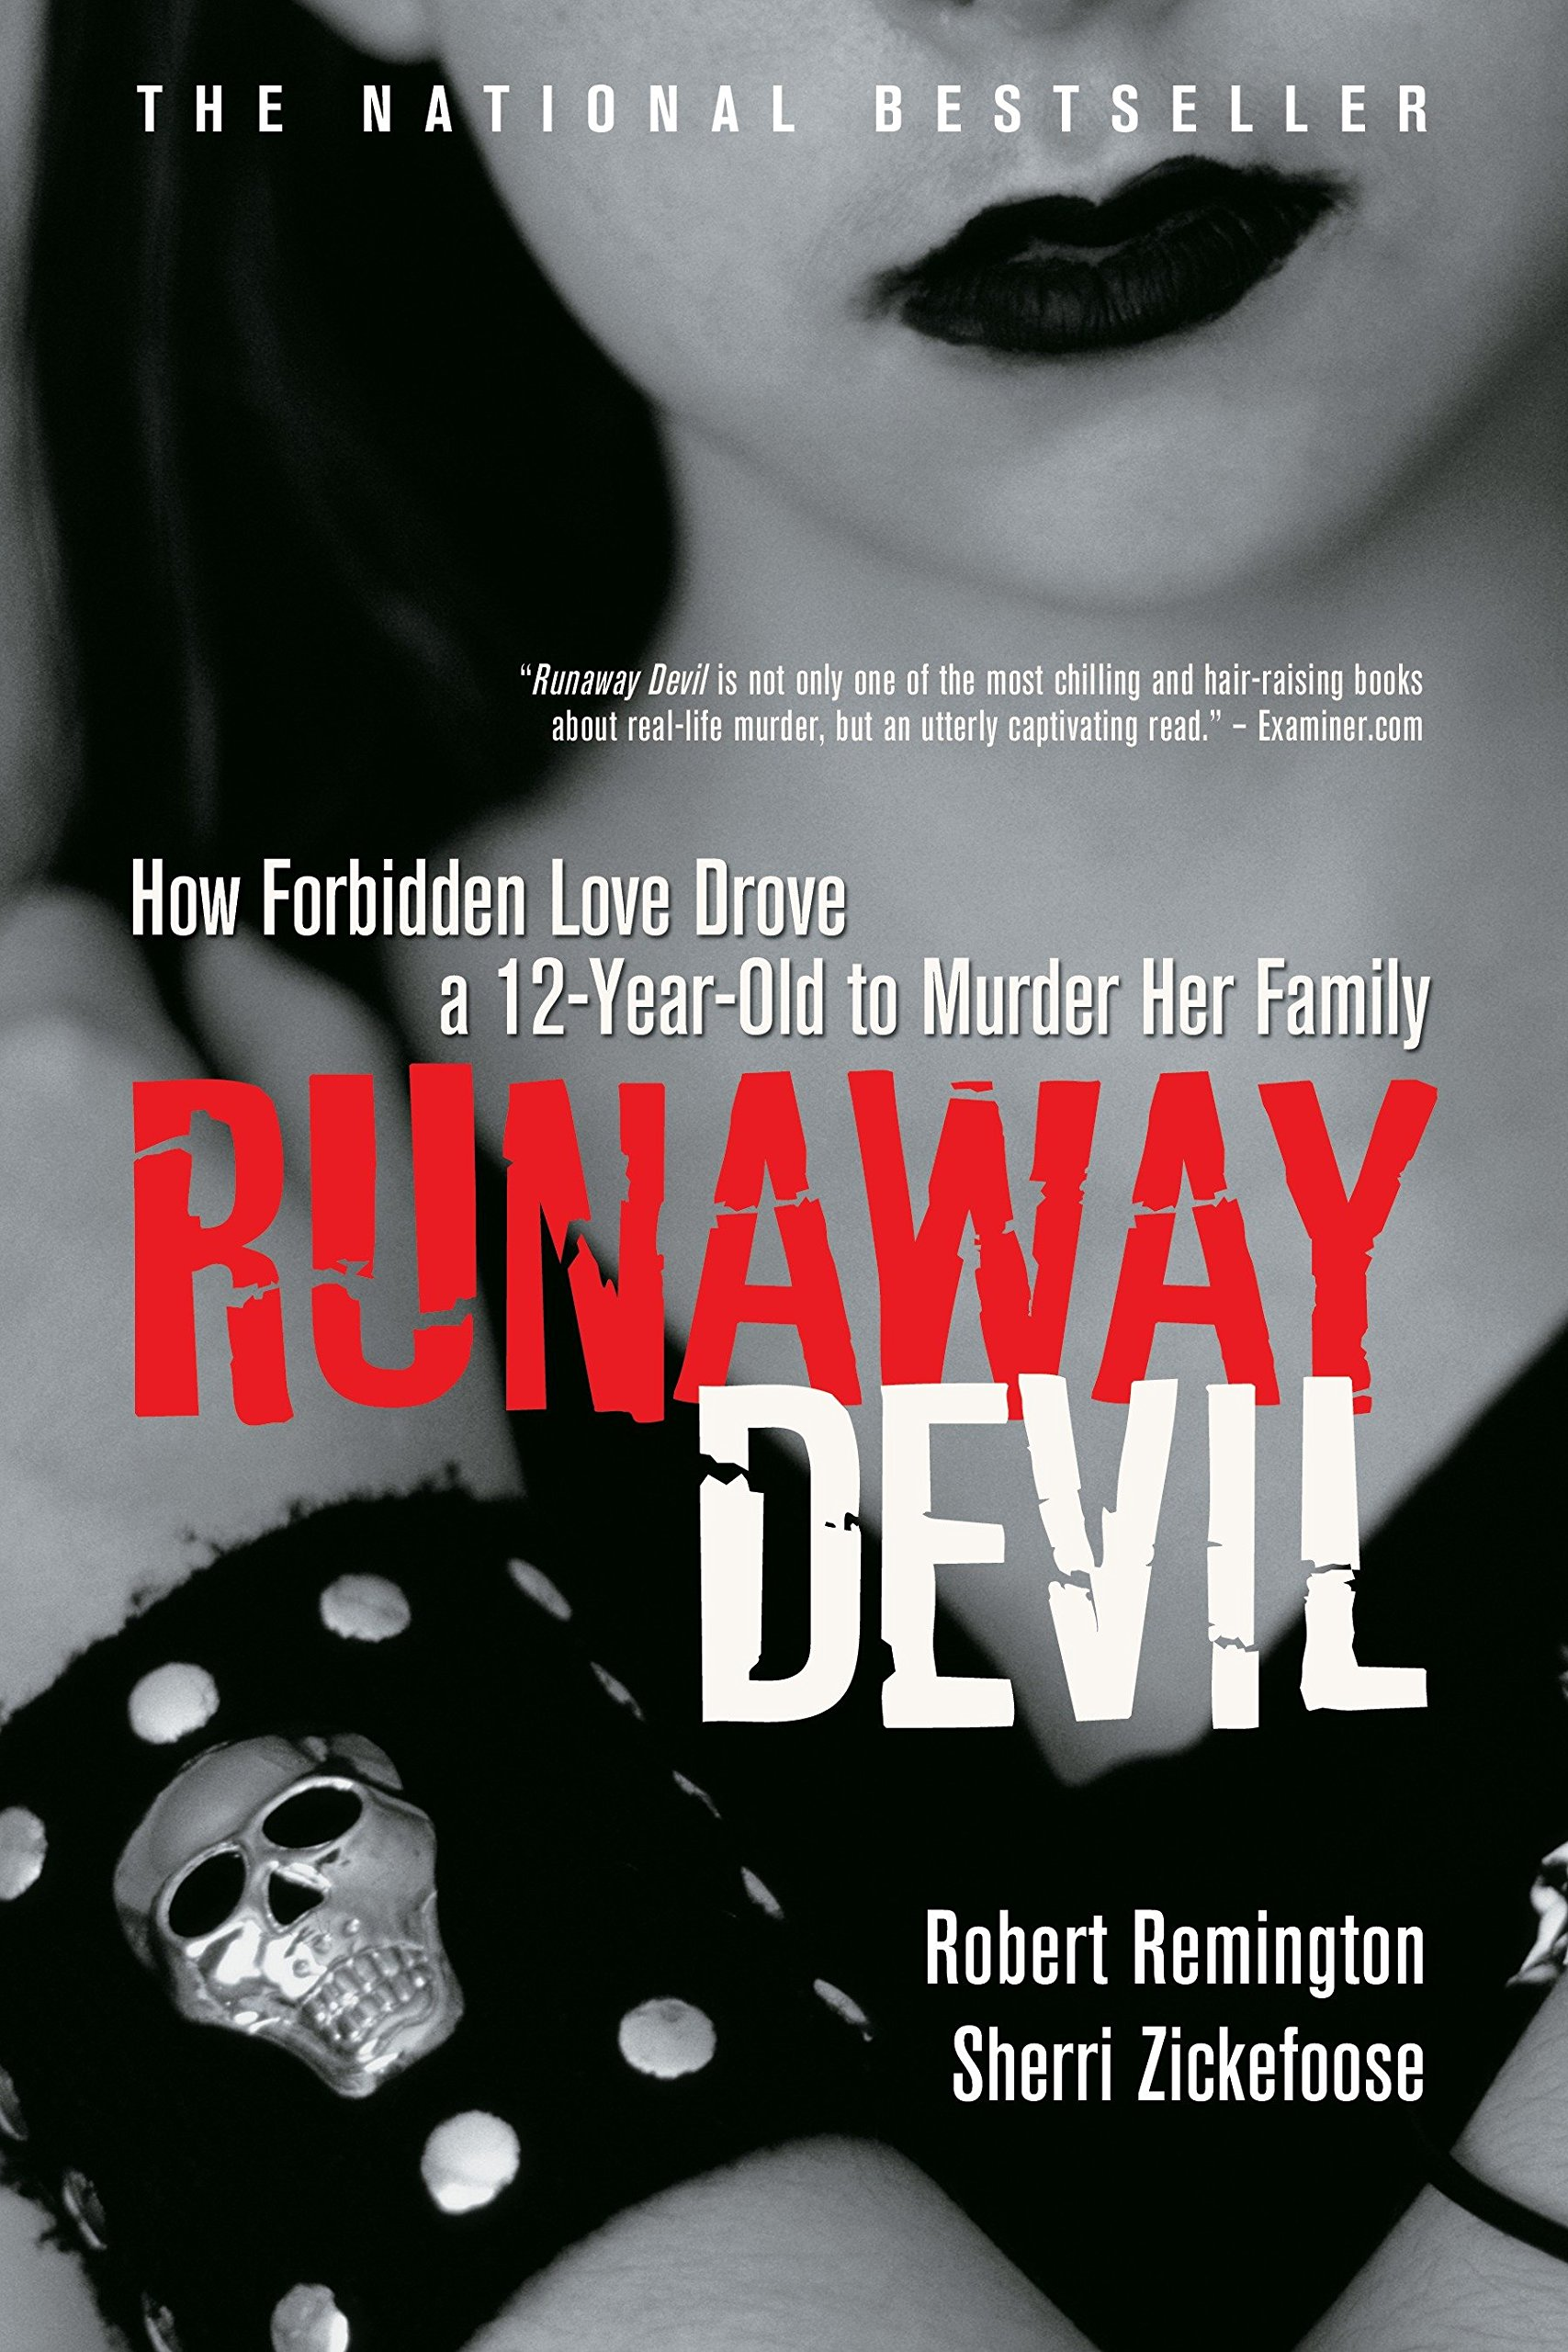 Runaway Devil: How Forbidden Love Drove a 12-Year-Old to Murder Her Family  Paperback – Sep 7 2010